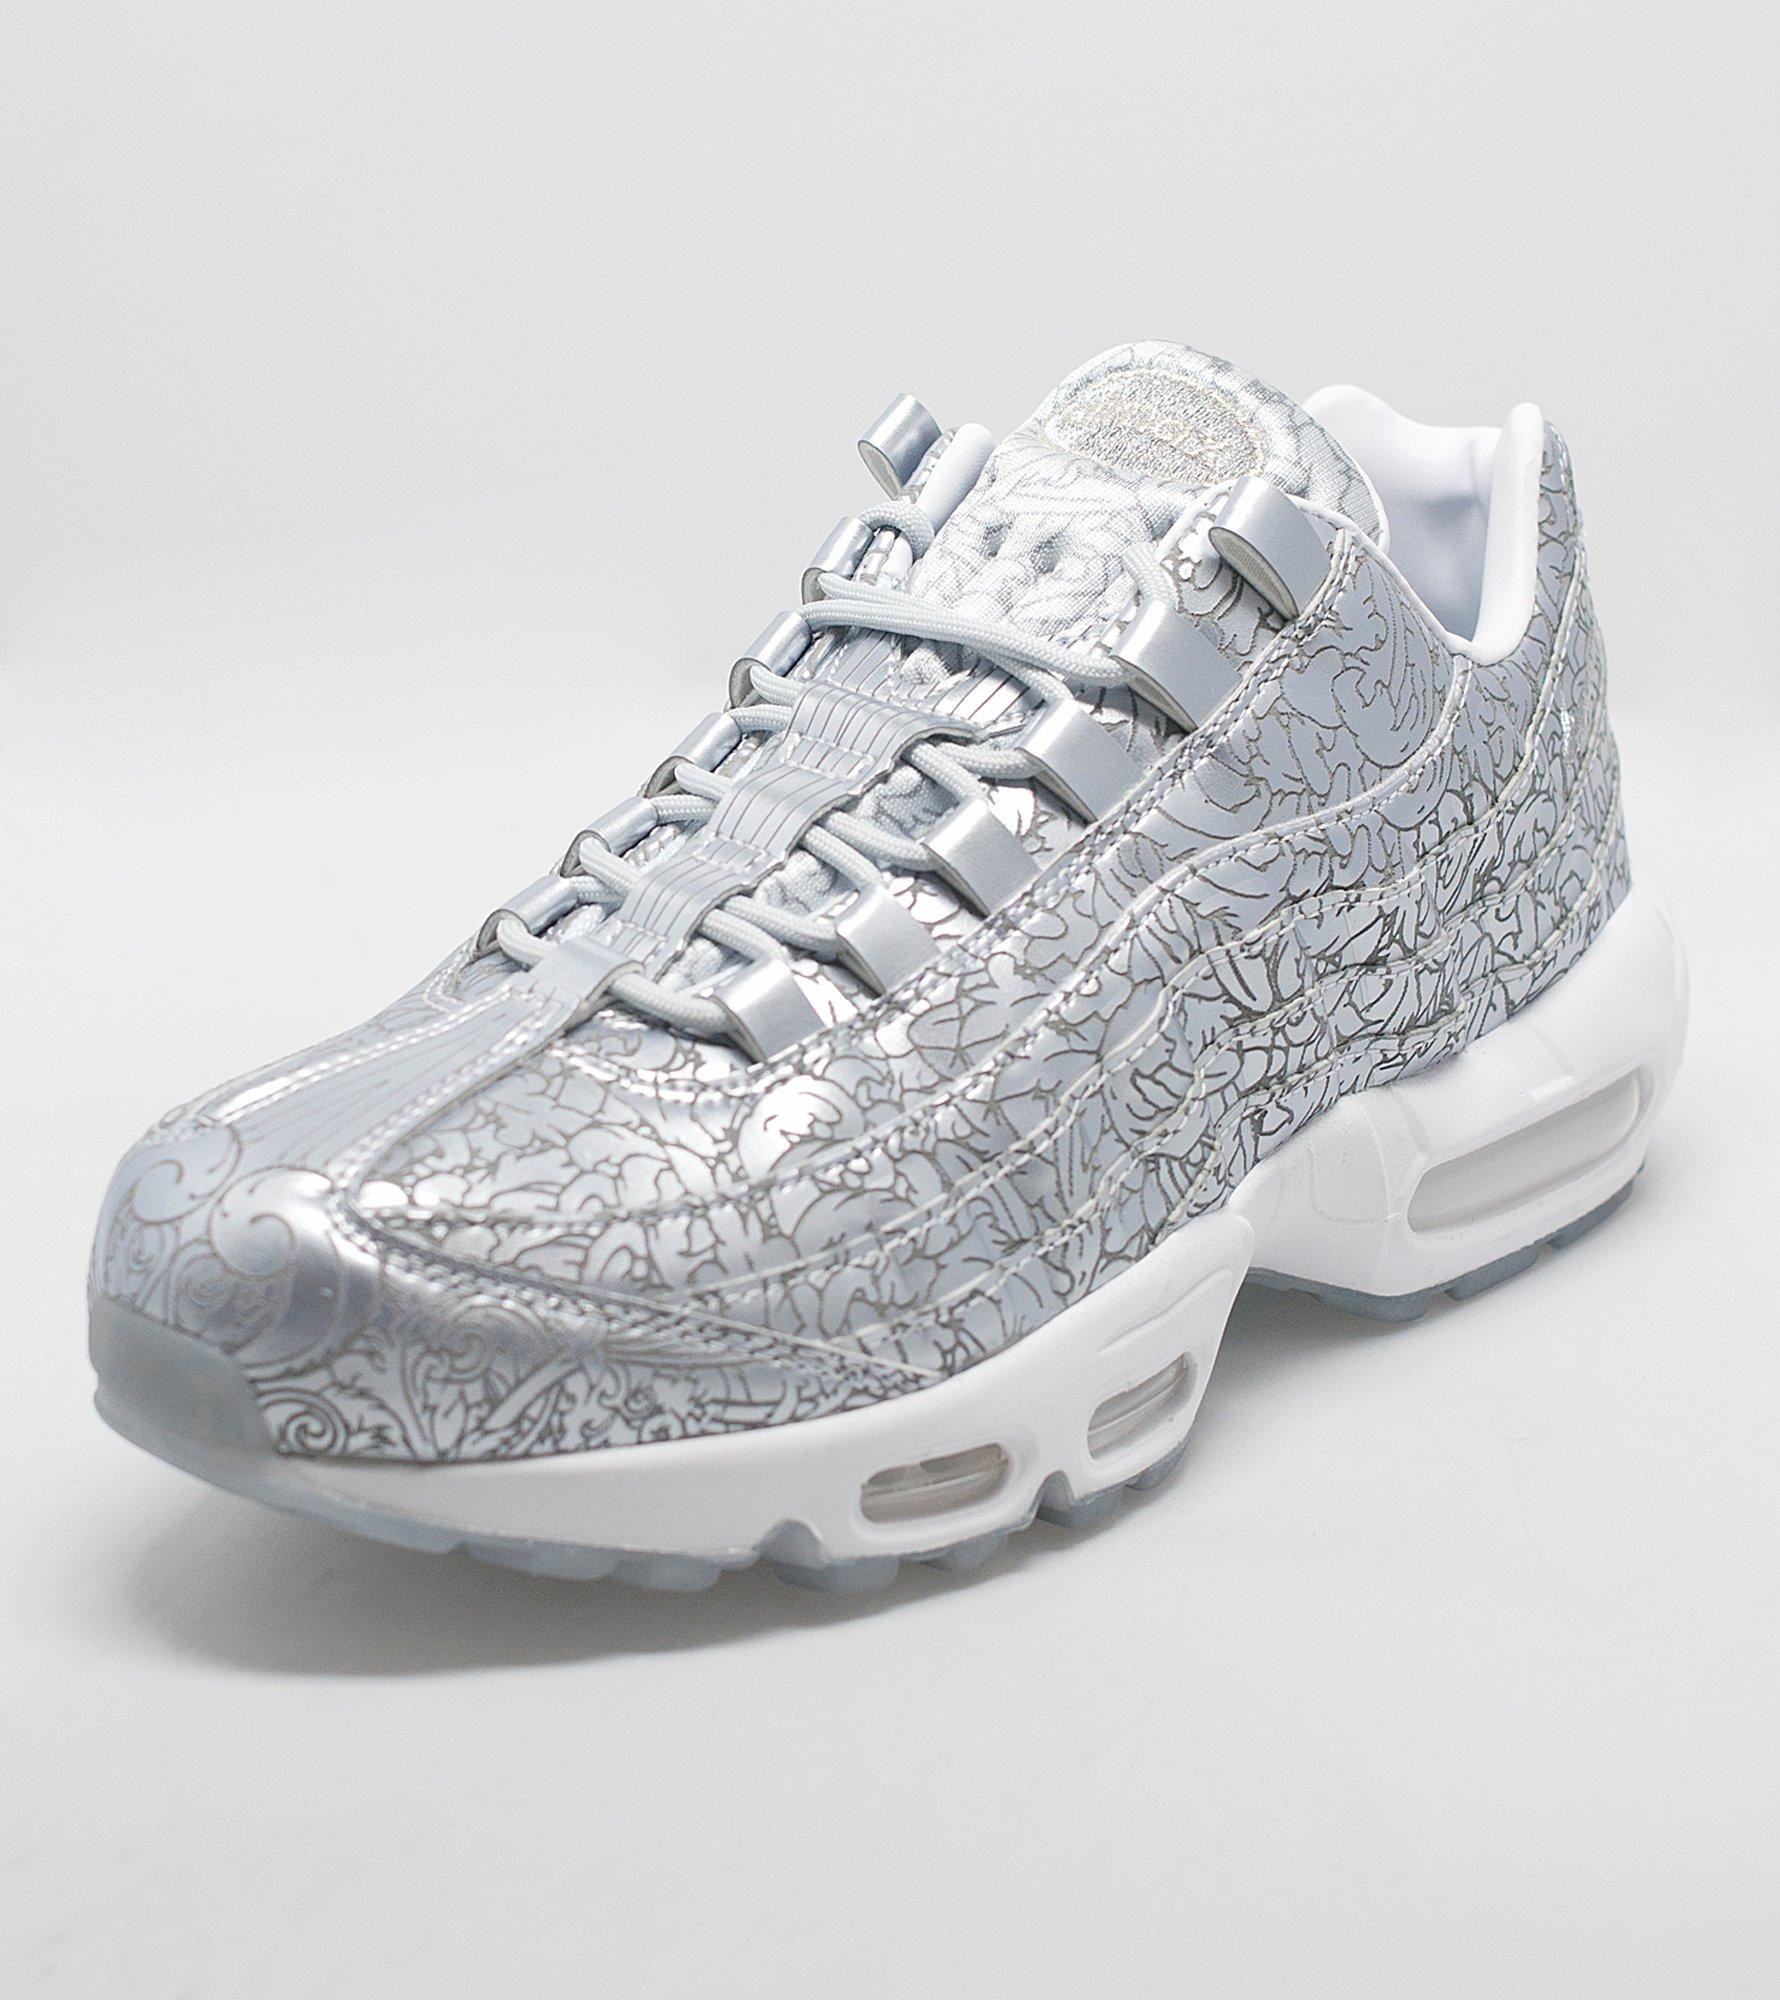 63e3fae470 ... italy get the nike air max 95 shoes at champs sports. shop casual  footwear apparel ...